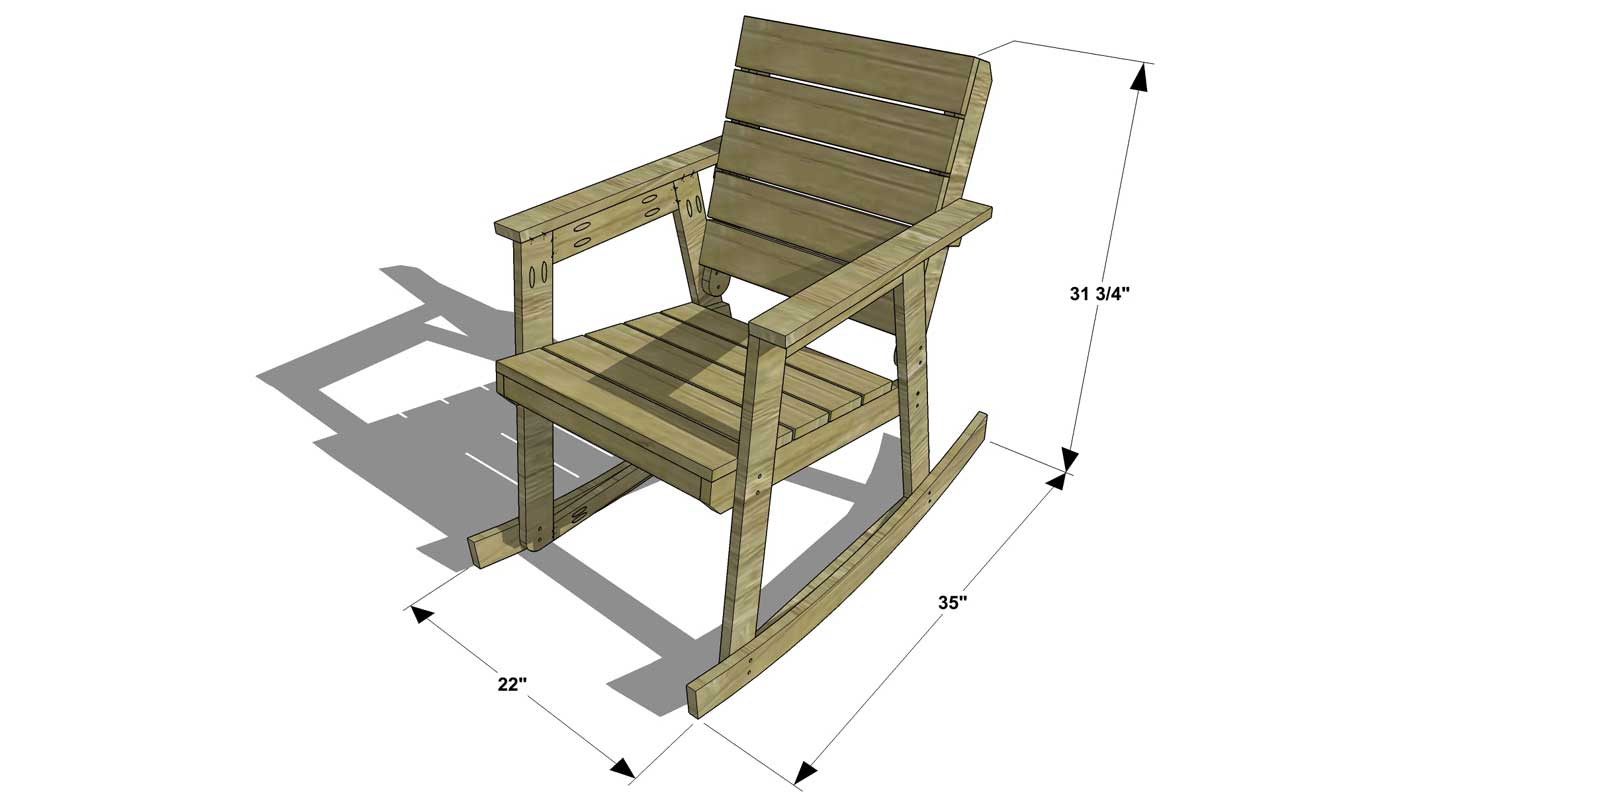 Superieur The Design Confidential Free DIY Furniture Plans How To Build A Rocking  Chair